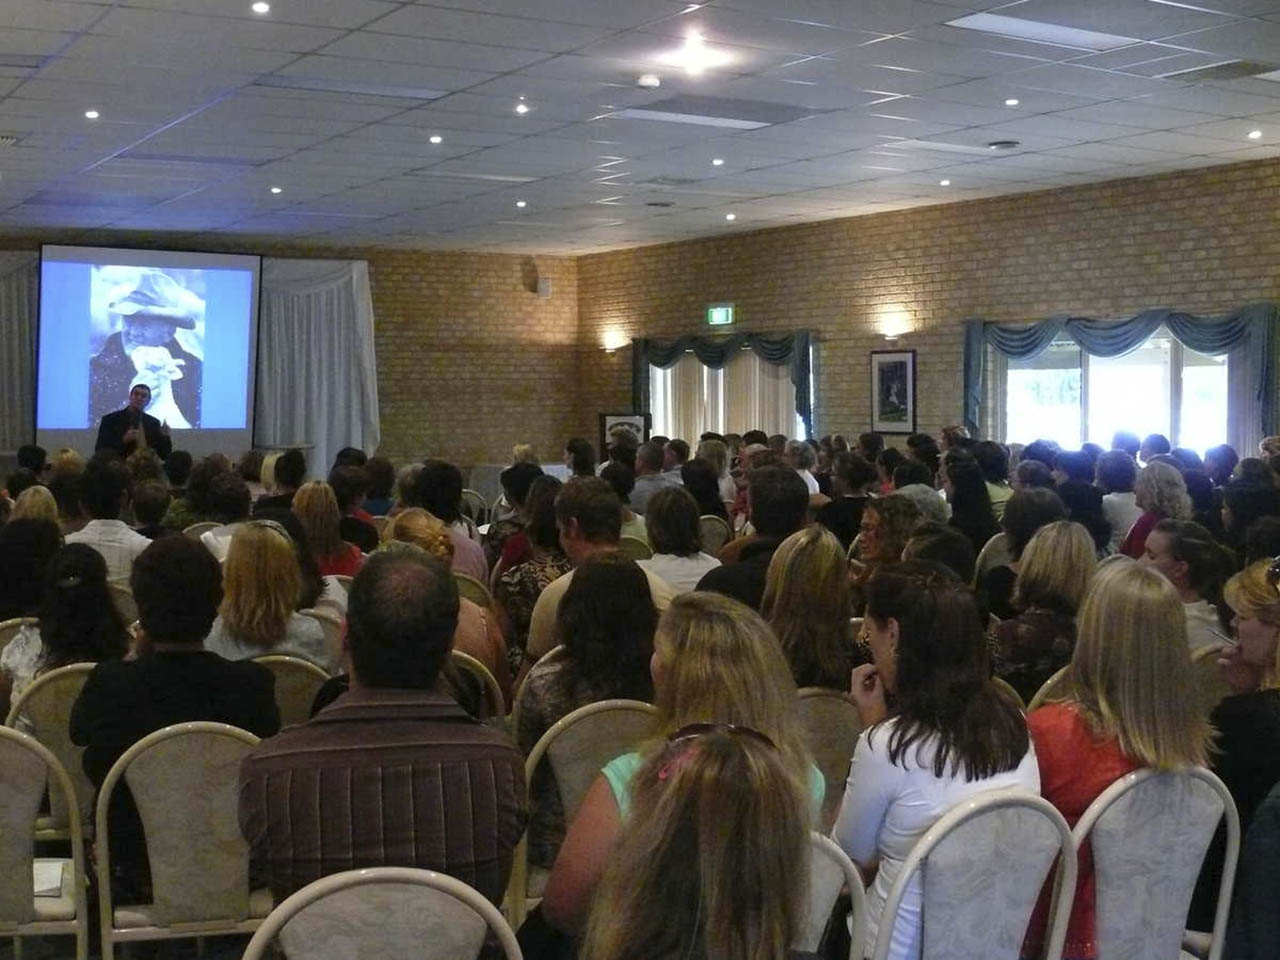 A Speaker Conducting A Conference With Projection Screen